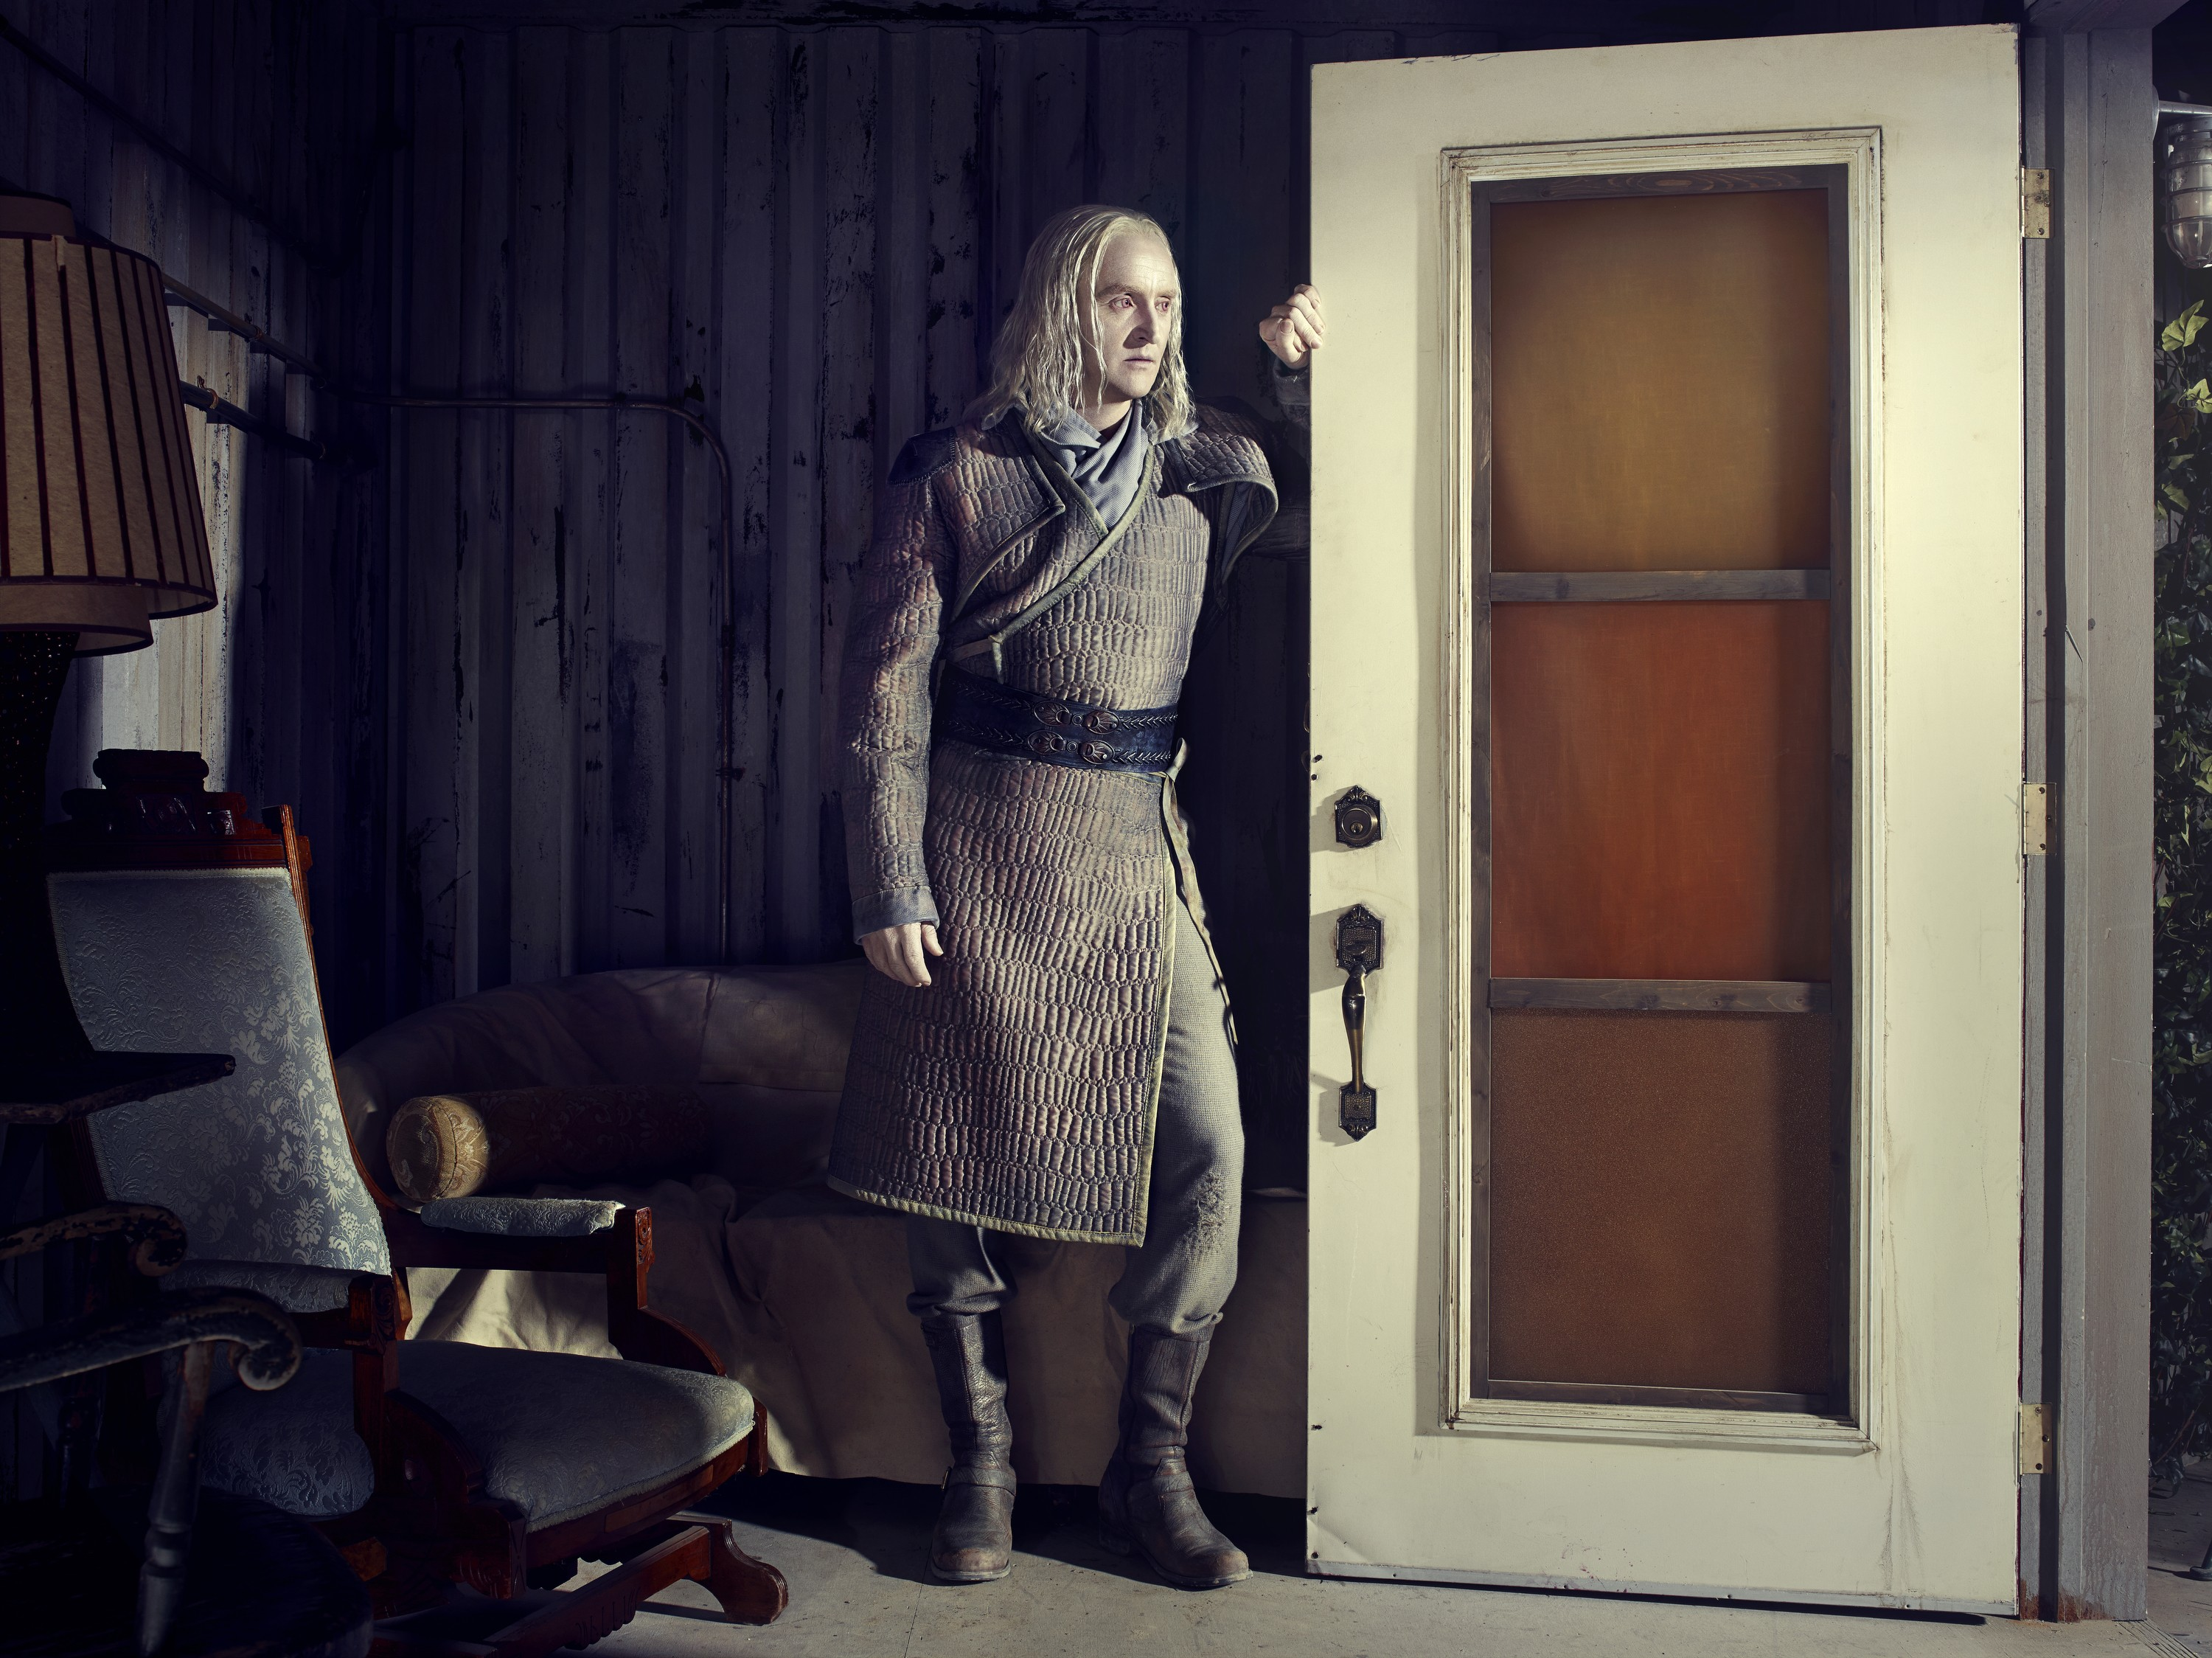 Defiance season 2 - Tony Curran as Datak Tarr standing